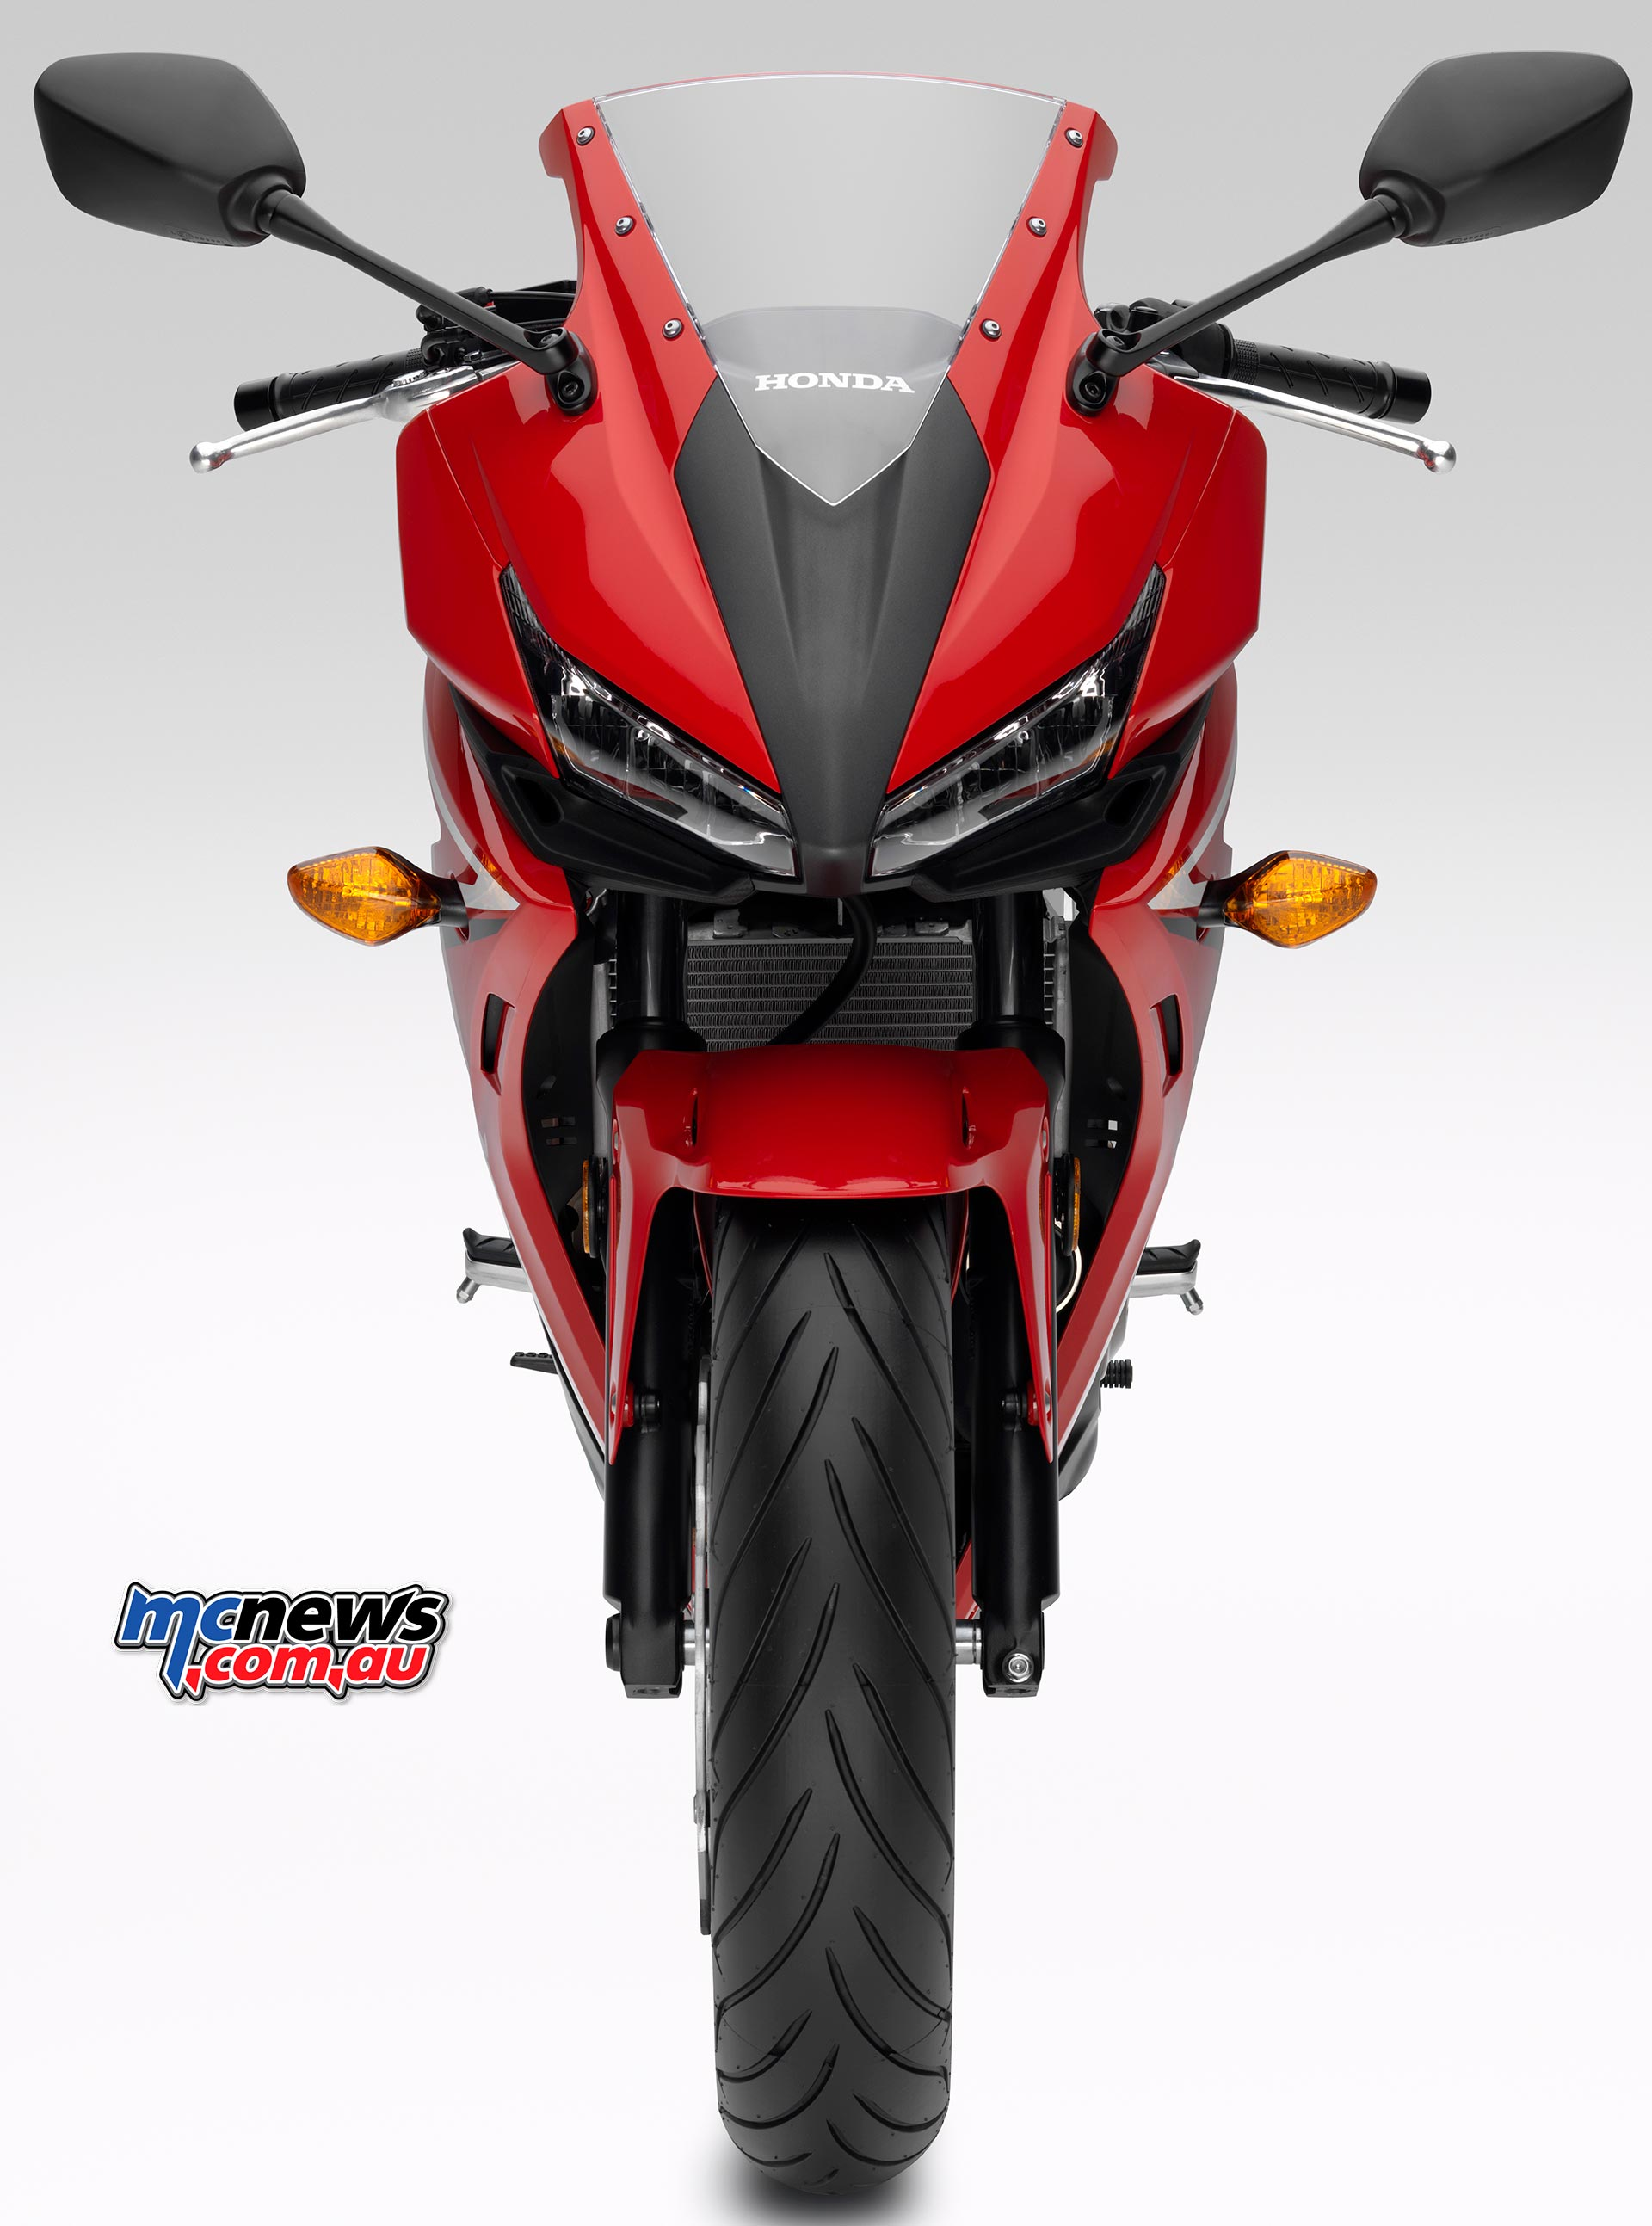 Nearest Honda Dealer >> Free on road costs with Honda CBR500R | MCNews.com.au